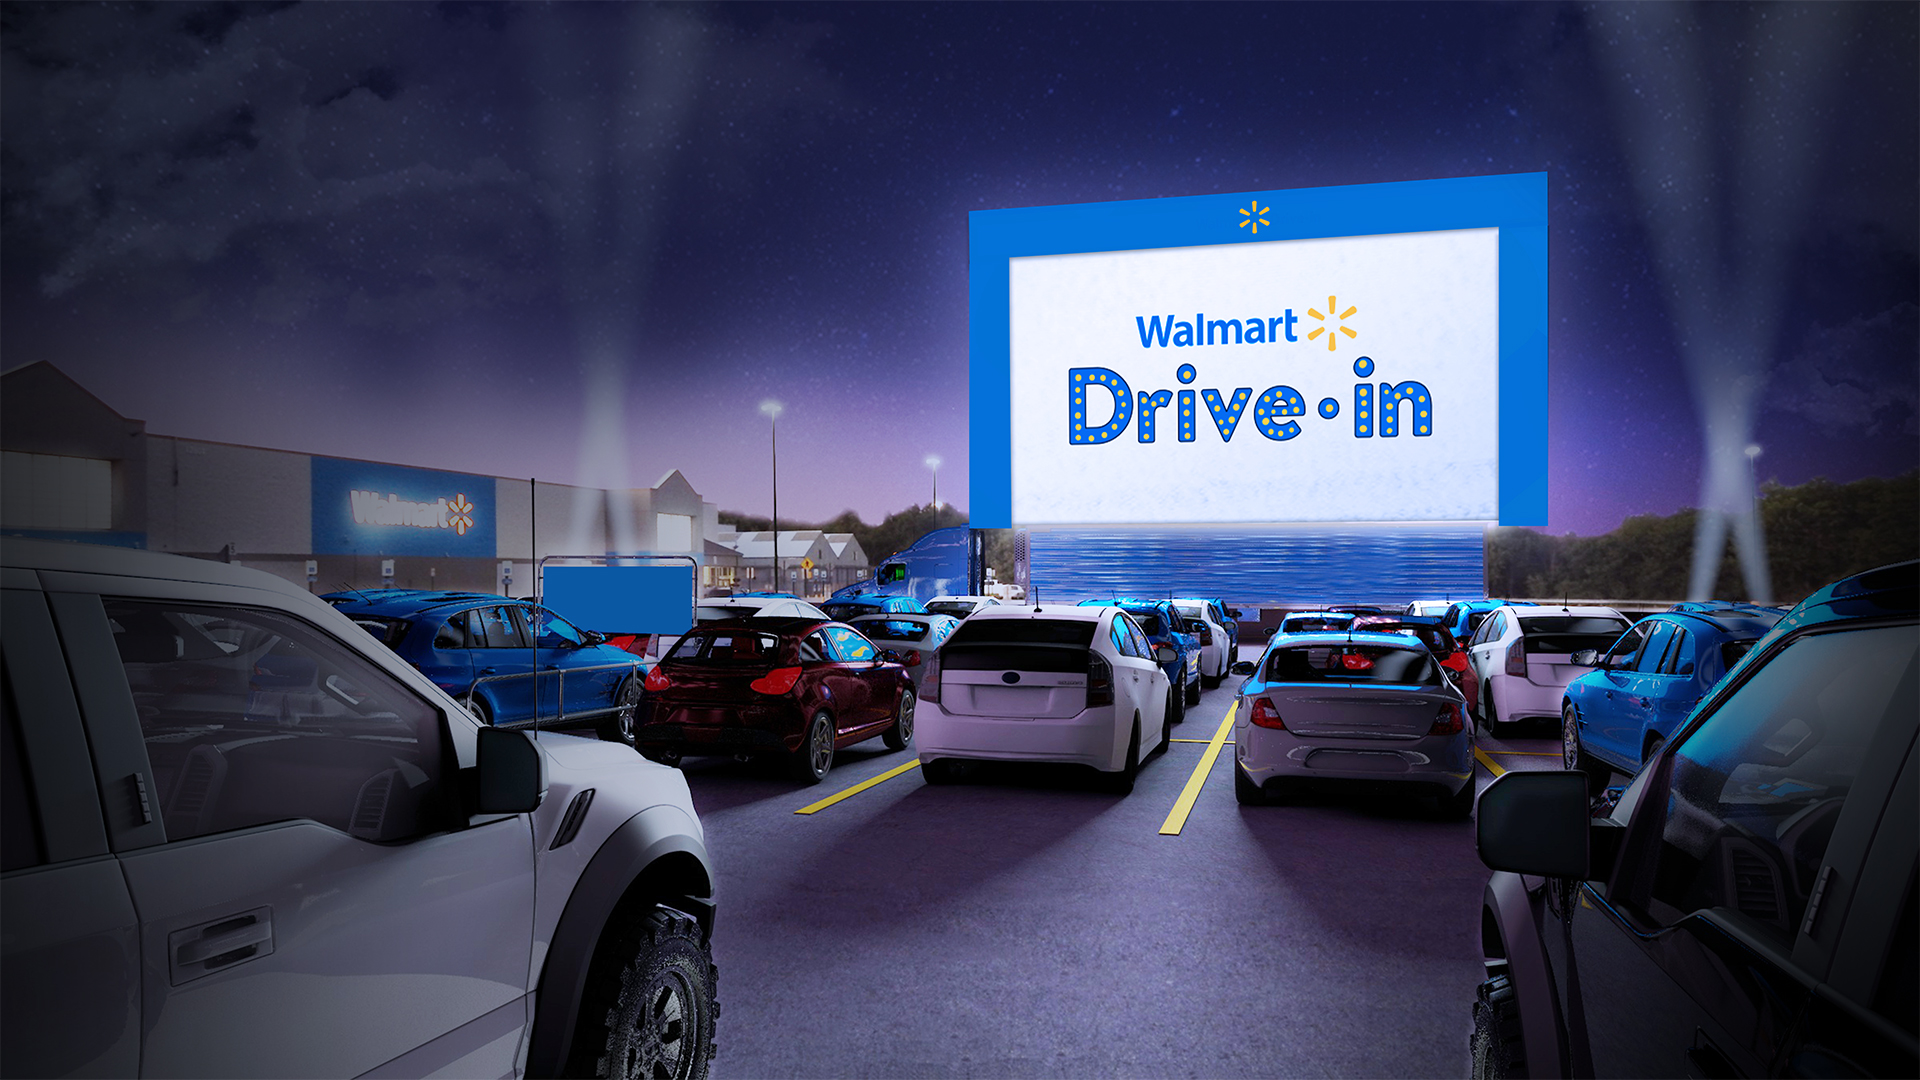 Walmart will transform its parking lots into drive-in theaters